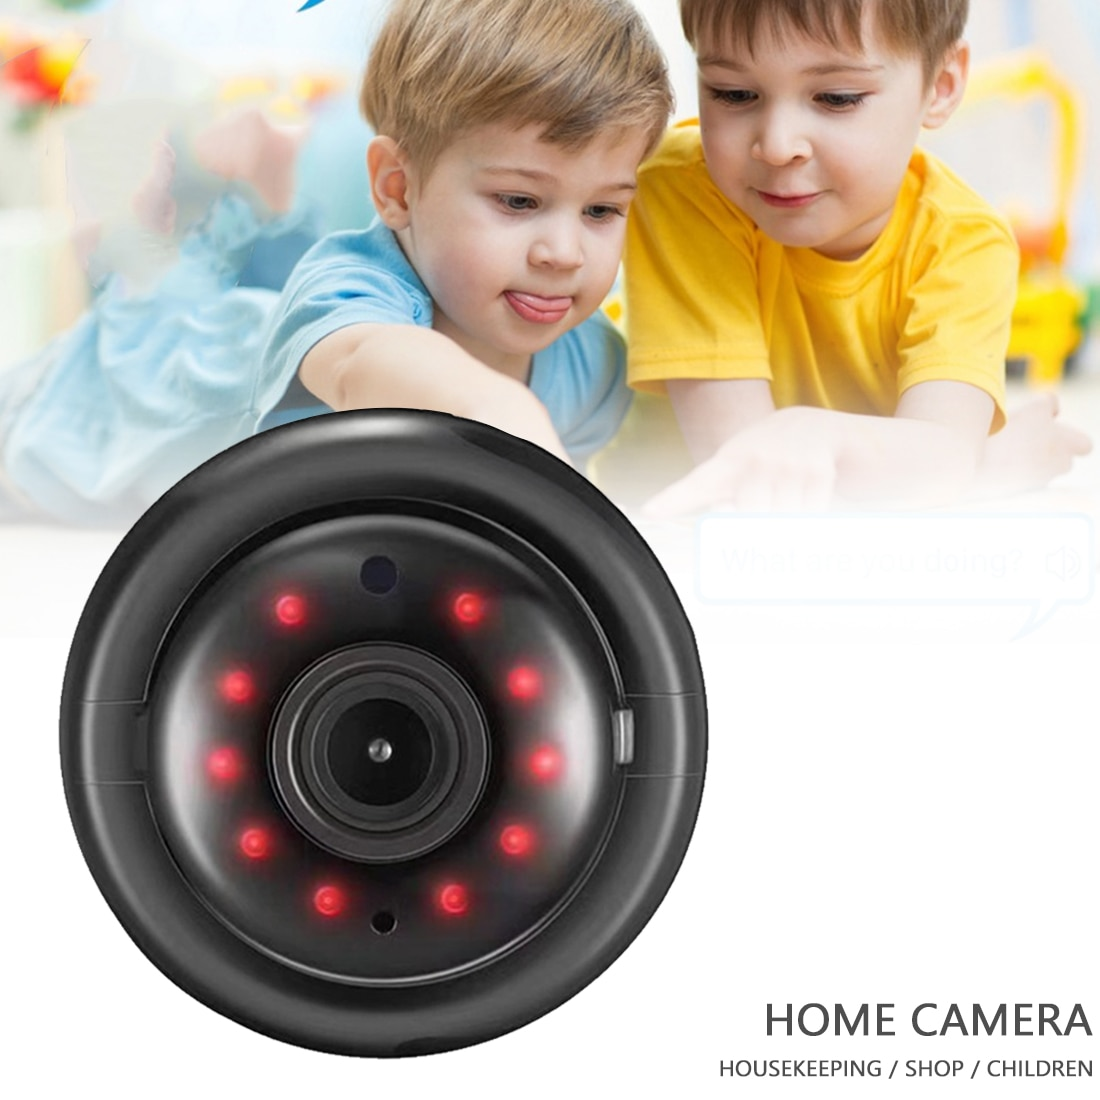 Home Security WIFI Camera Wireless HD IP Camera Two Way Audio Night Vision Video Monitor 360 Degree Panoramic Home Security HD